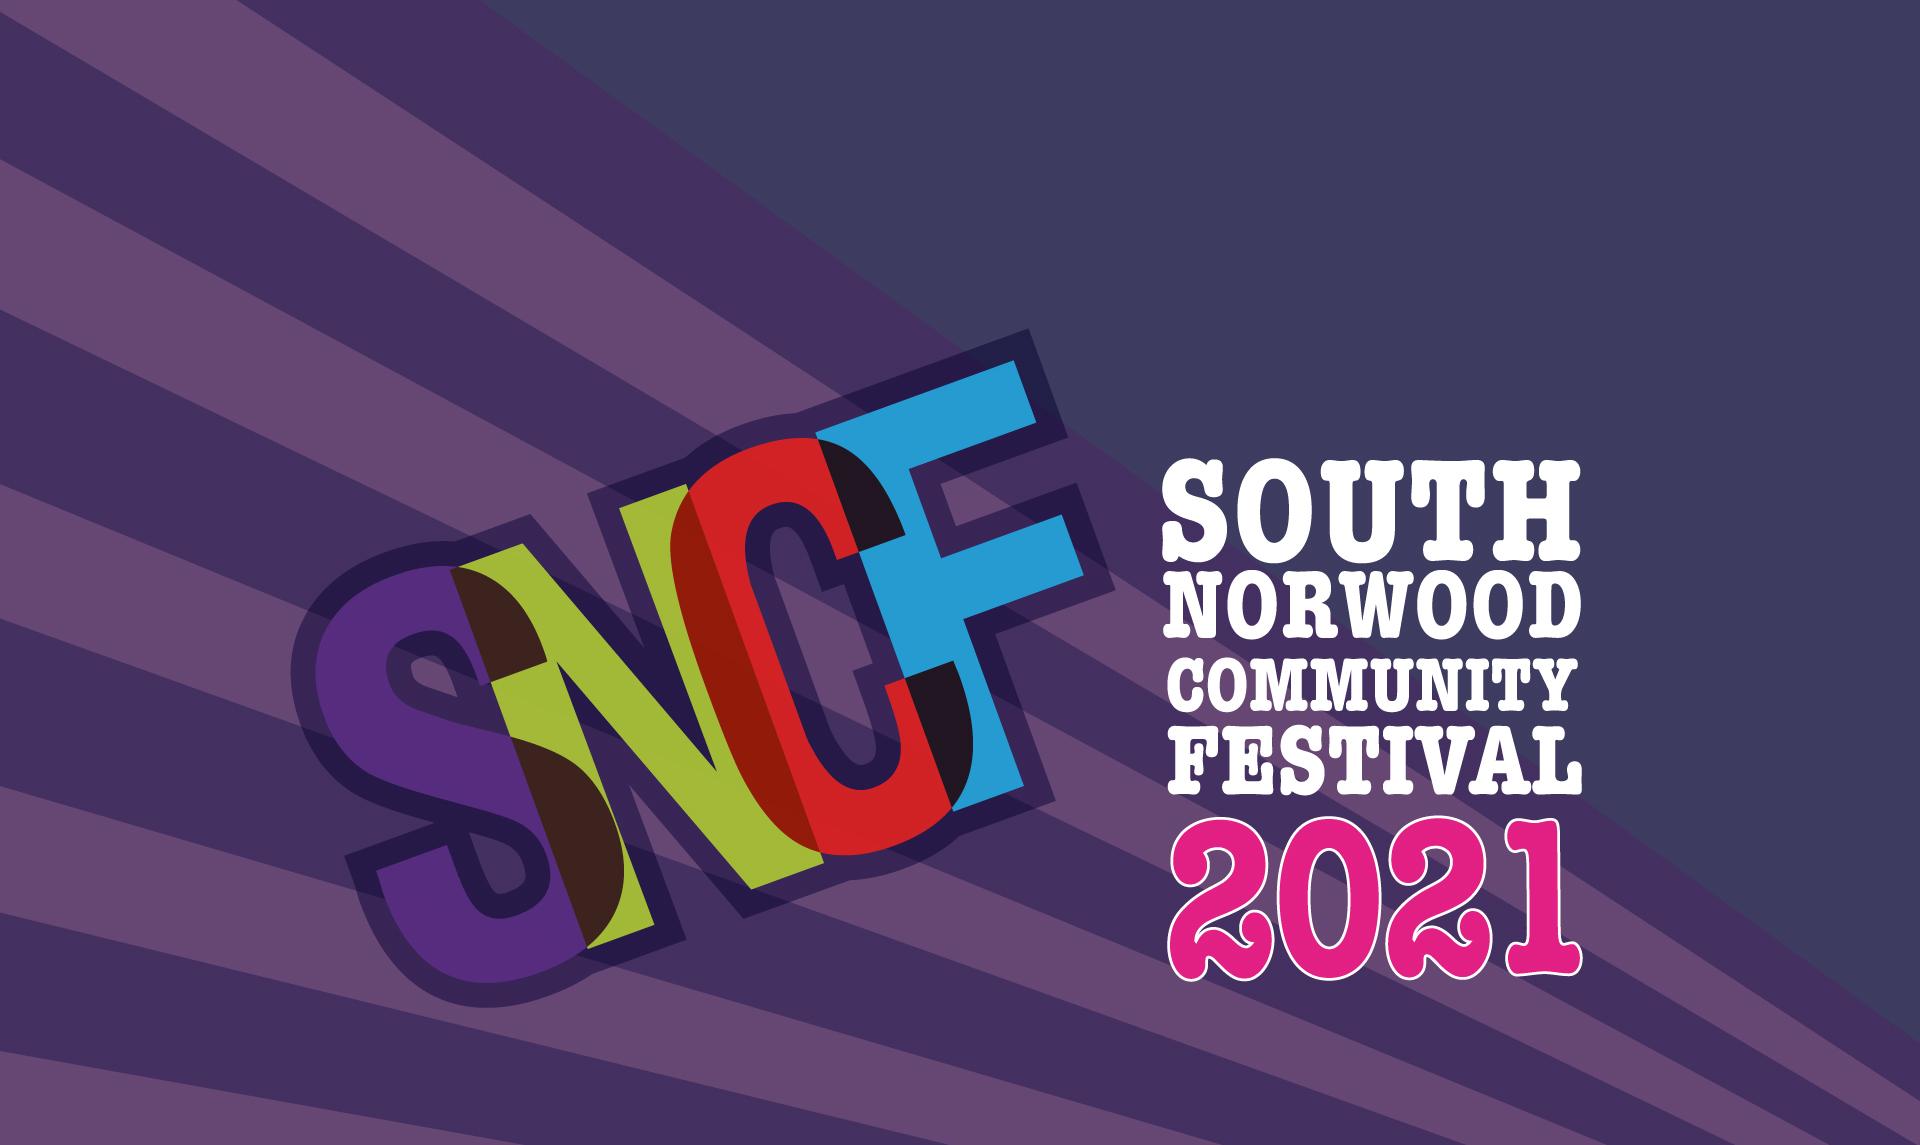 South Norwood Festival Croydon